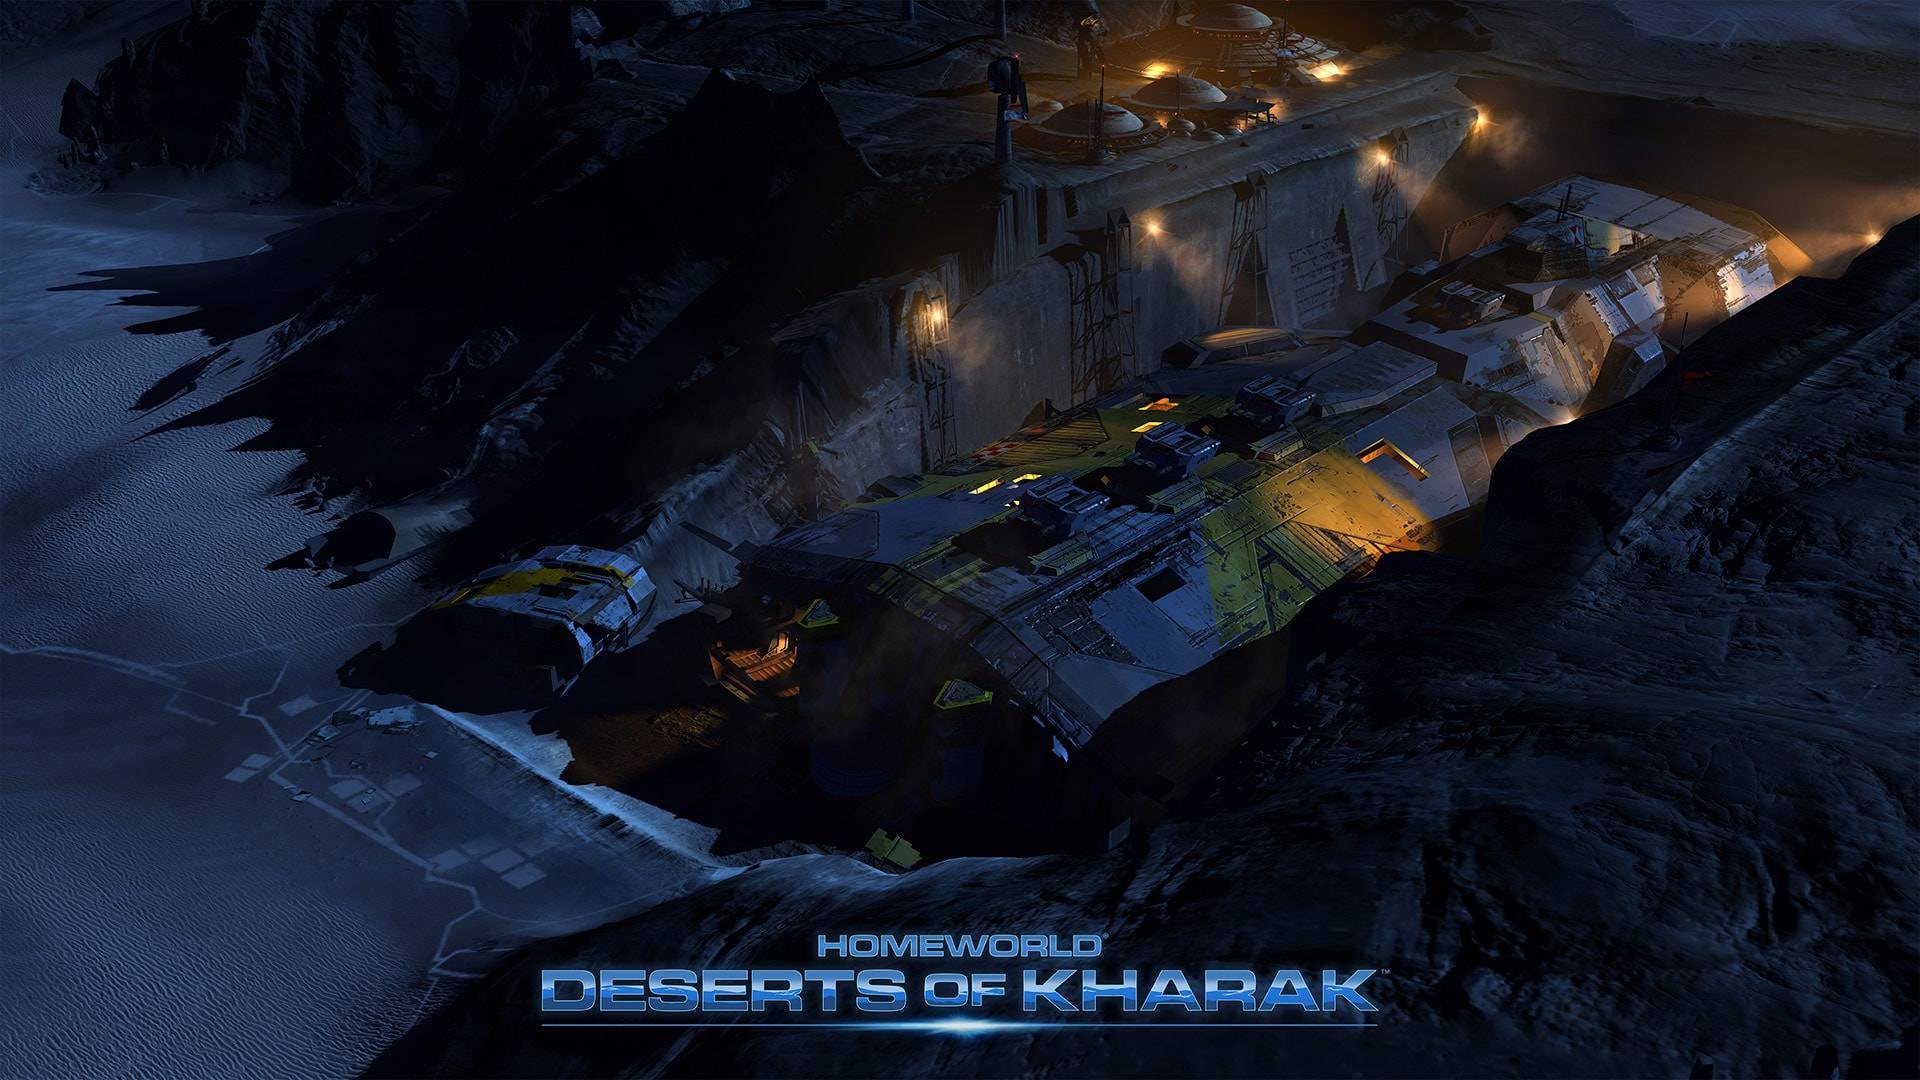 Homeworld: Deserts of Kharak HD pictures